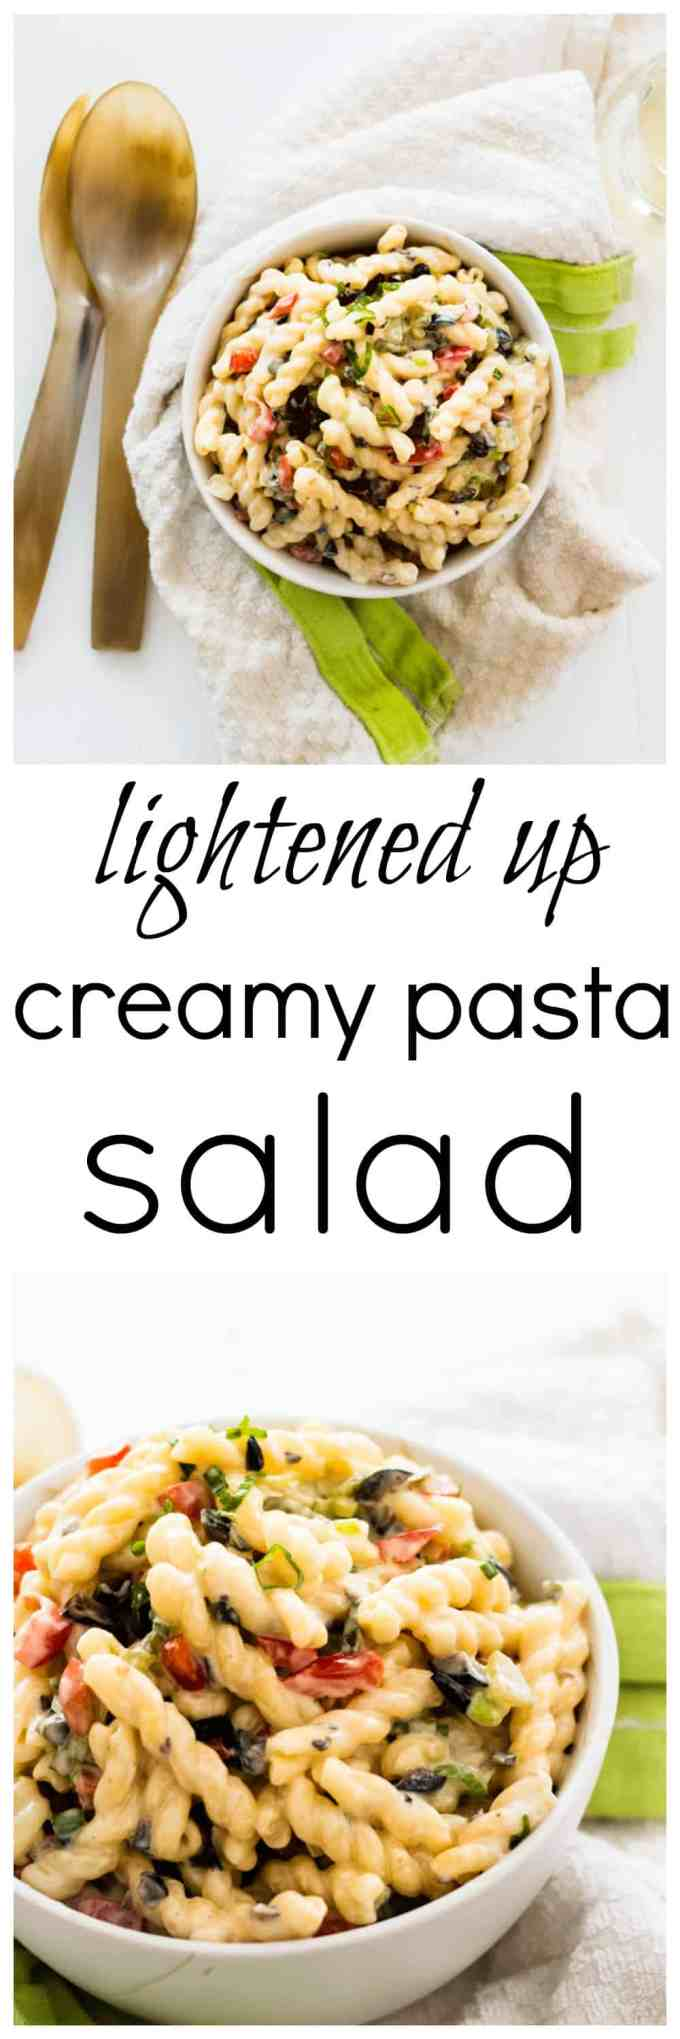 This lightened up, healthier version on the popular summer creamy pasta salad is perfect for the upcoming grilling season and summer potlucks.